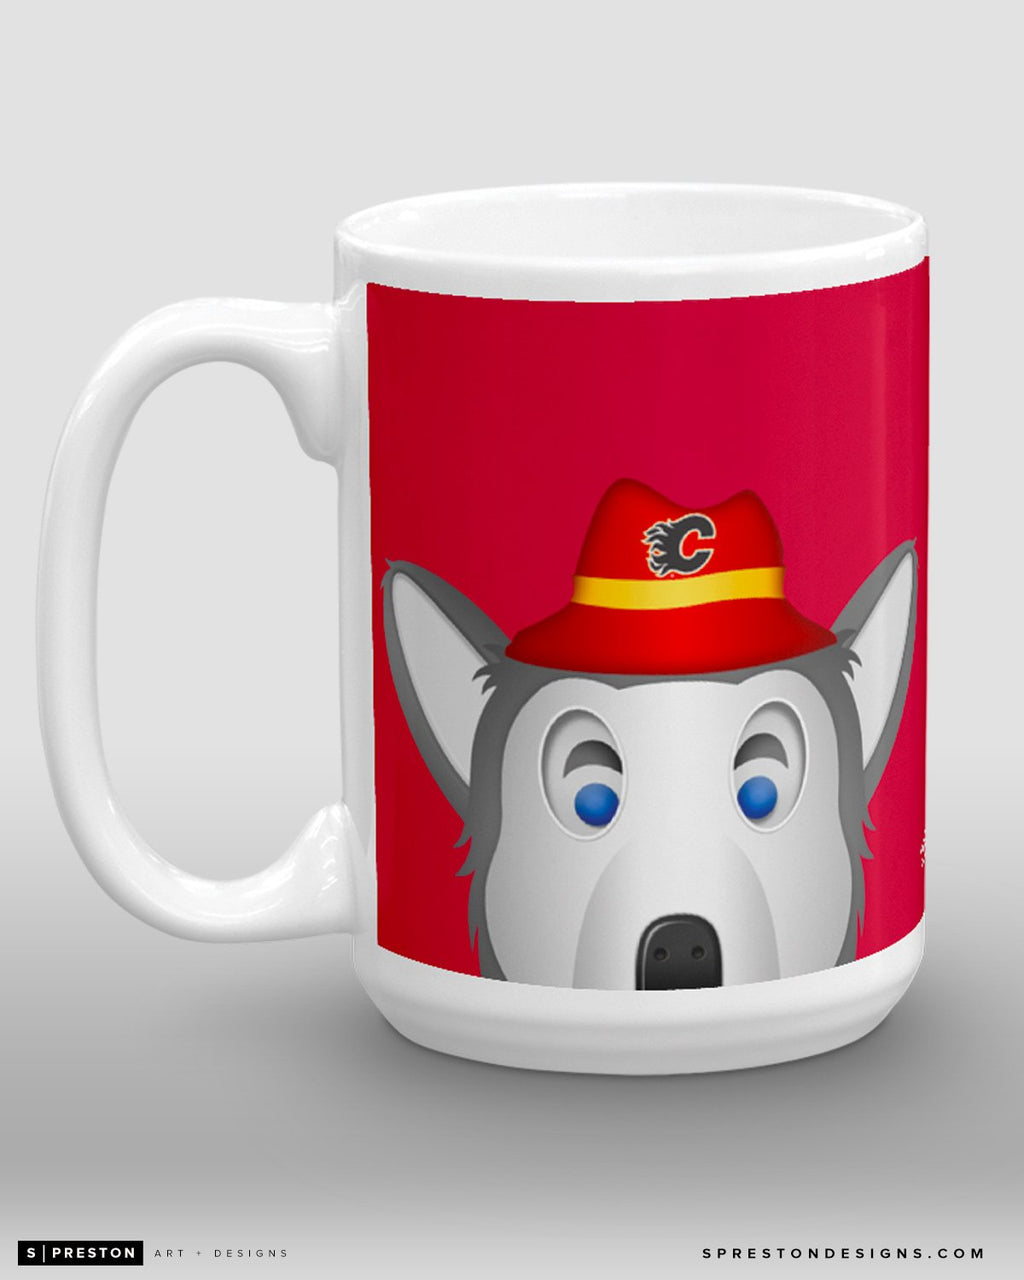 Minimalist Harvey The Hound Coffee Mug - NHL Licensed - Calgary Flames Mascot